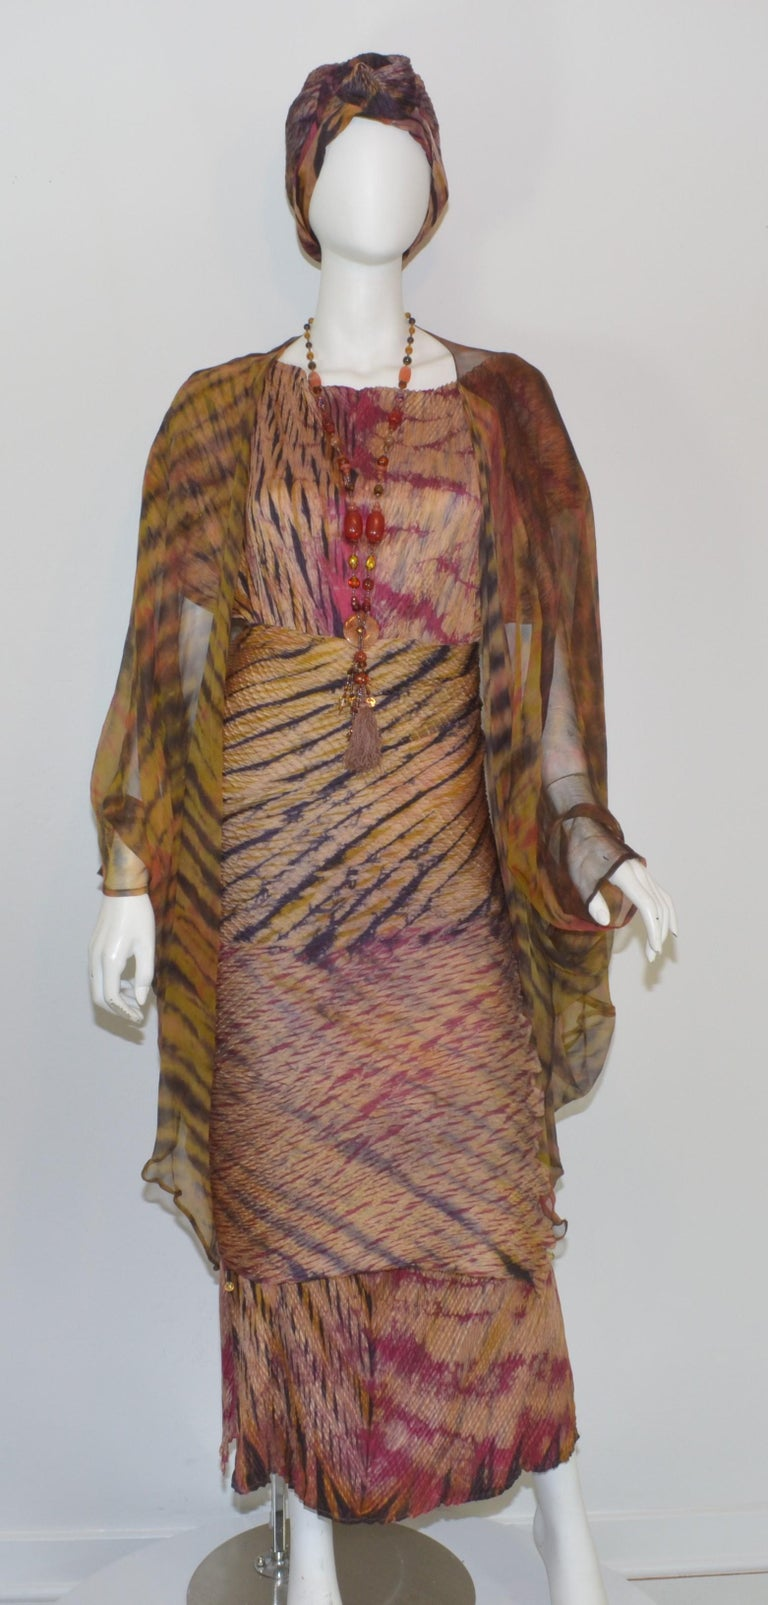 Carter Smith Shibori Maxi Dress Ensemble from the legendary San Francisco Art to Wear Mecca, Obiko. Ensemble includes 4 pieces. : turban style head piece, with Head Piece, Necklace, dress, chiffon duster vest. Fabric is hand dyed silk in the shibori